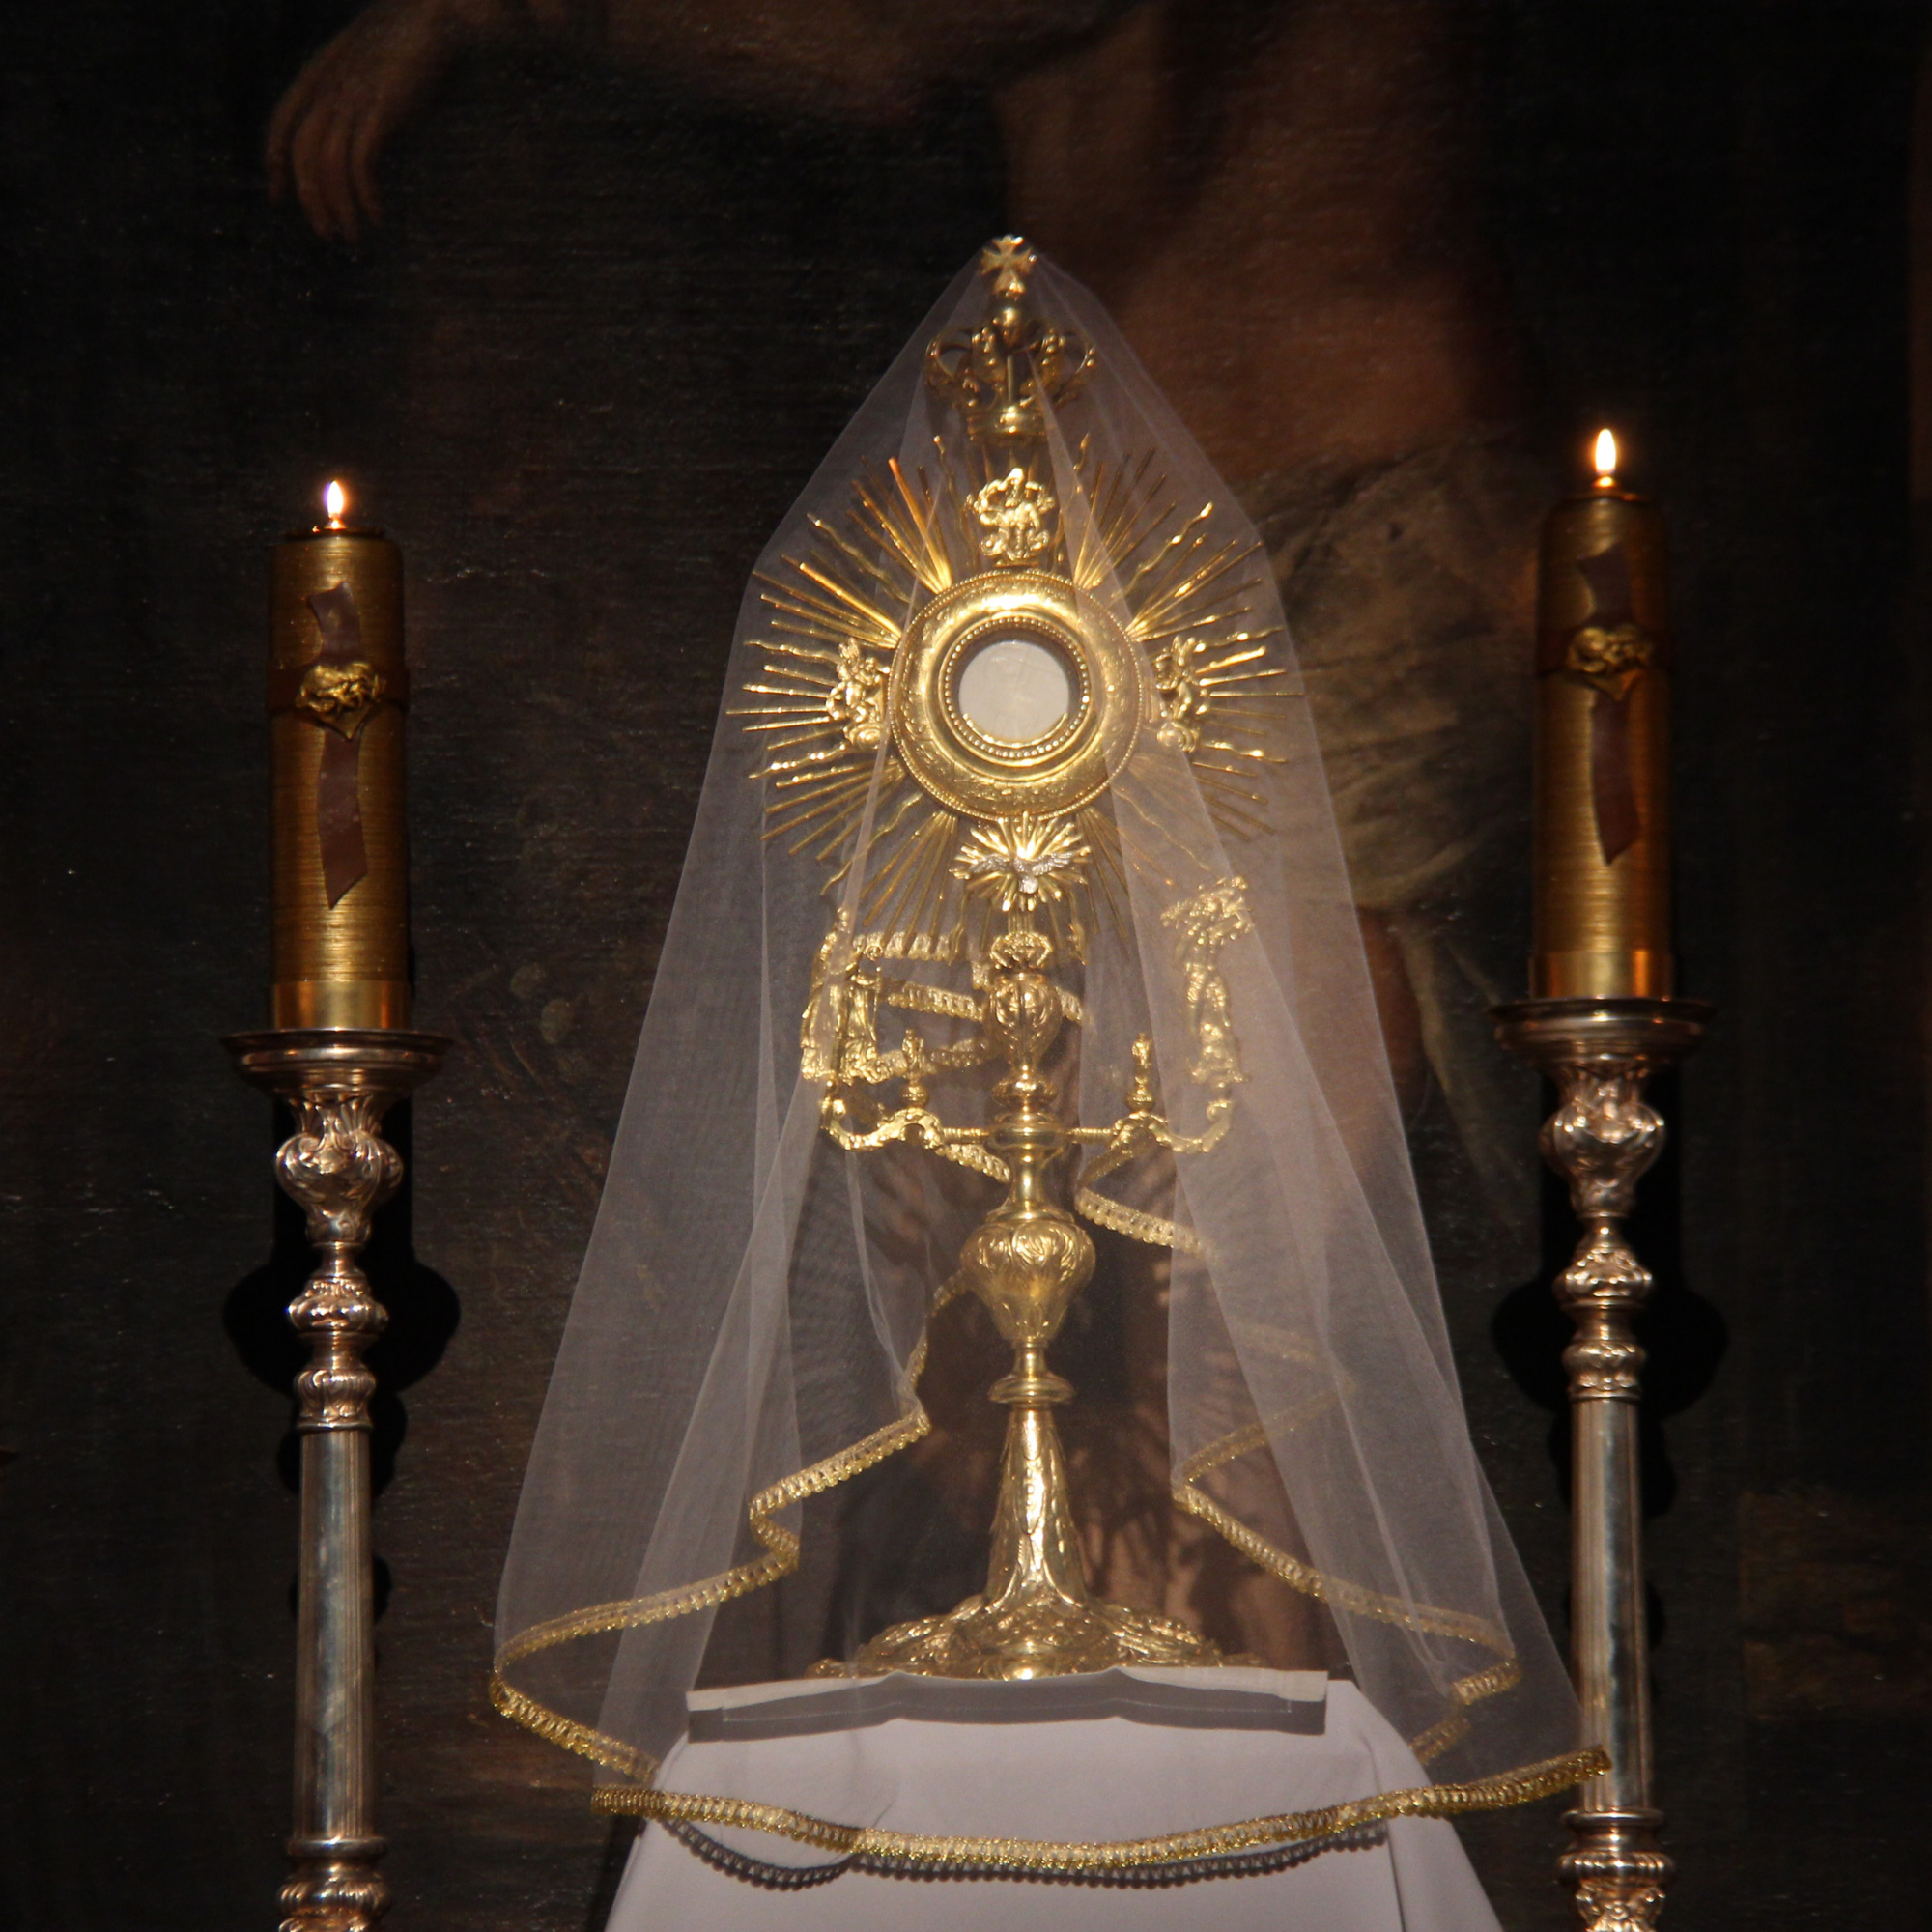 15 Inspiring Quotes from the Saints on the Eucharist